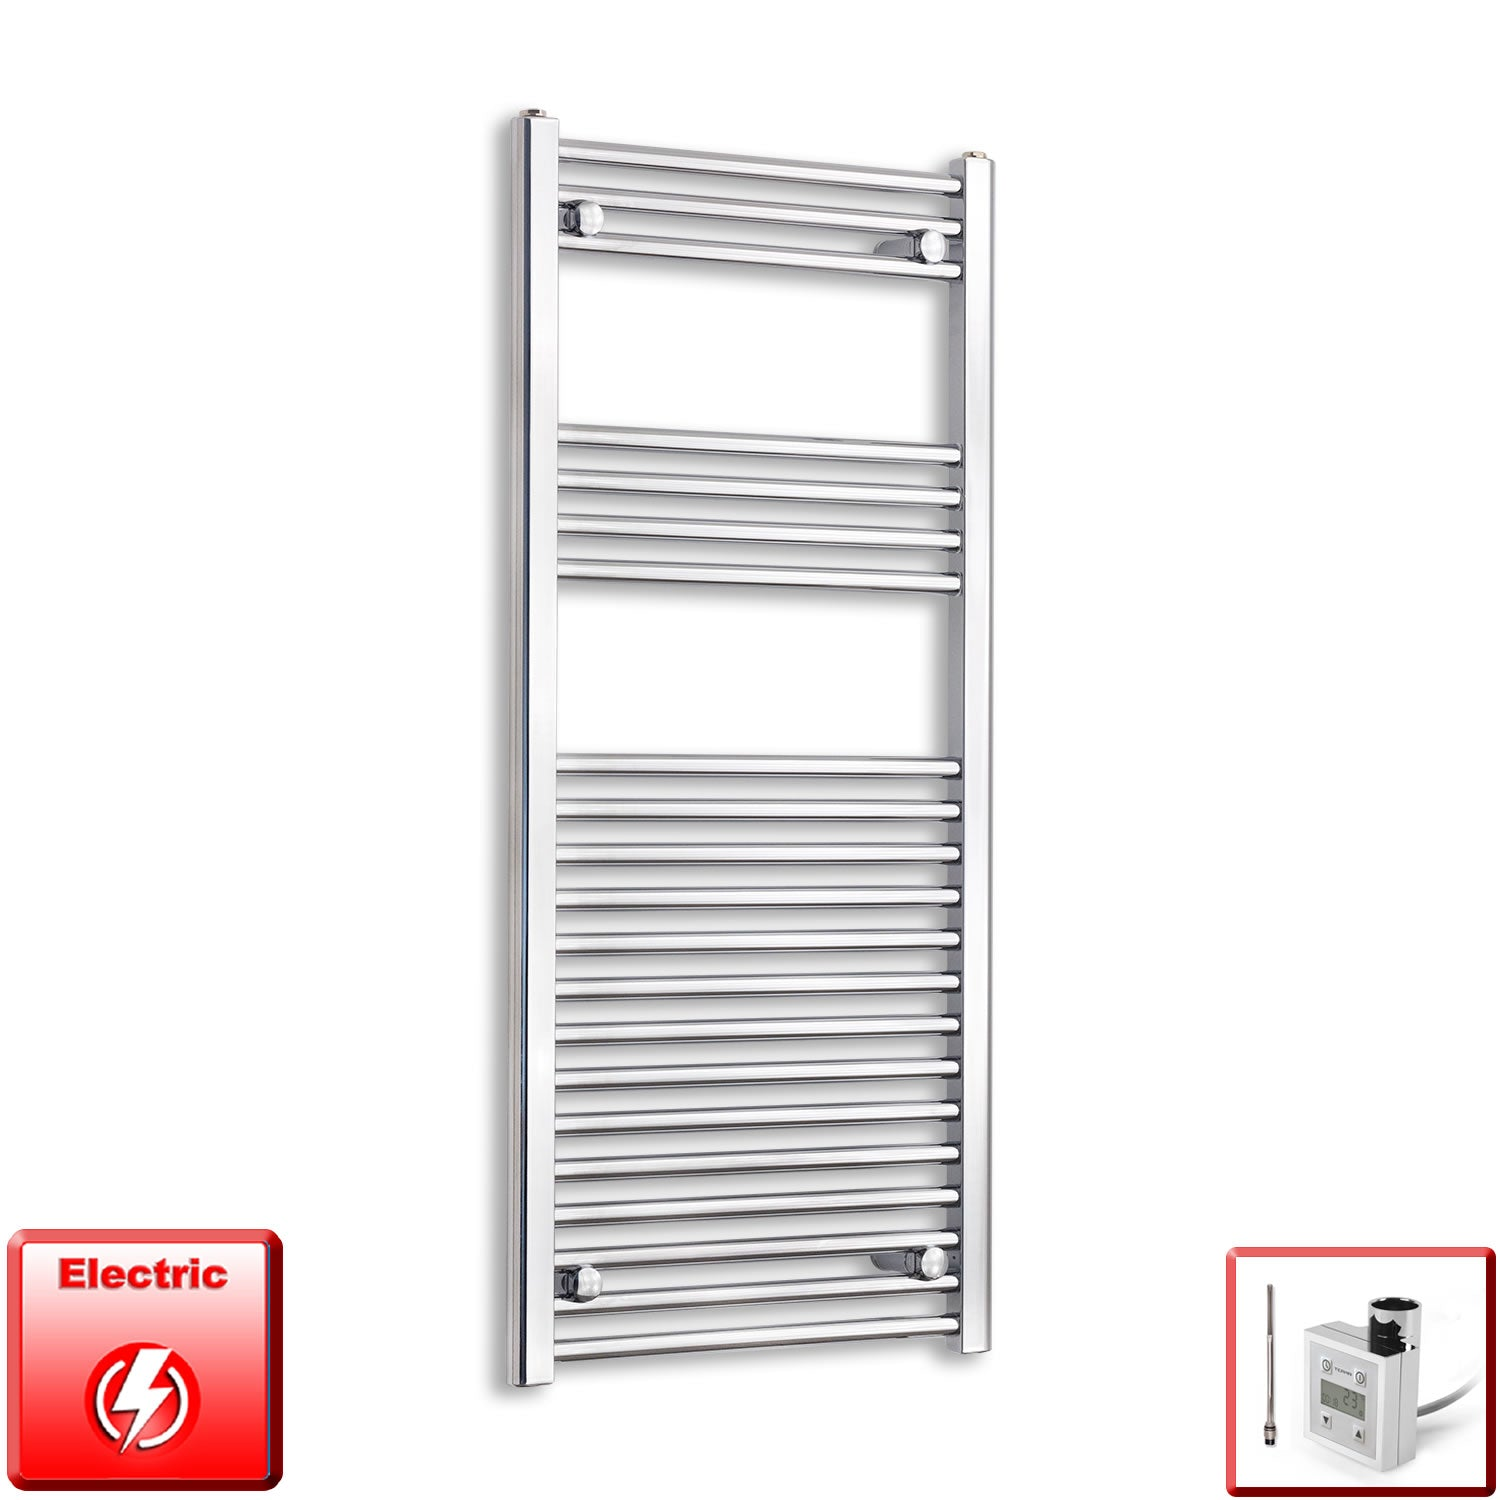 600mm Wide 1100mm High Flat Or Curved Chrome Pre-Filled Electric Heated Towel Rail Radiator HTR,KTX-3 Thermostatic Element / Straight